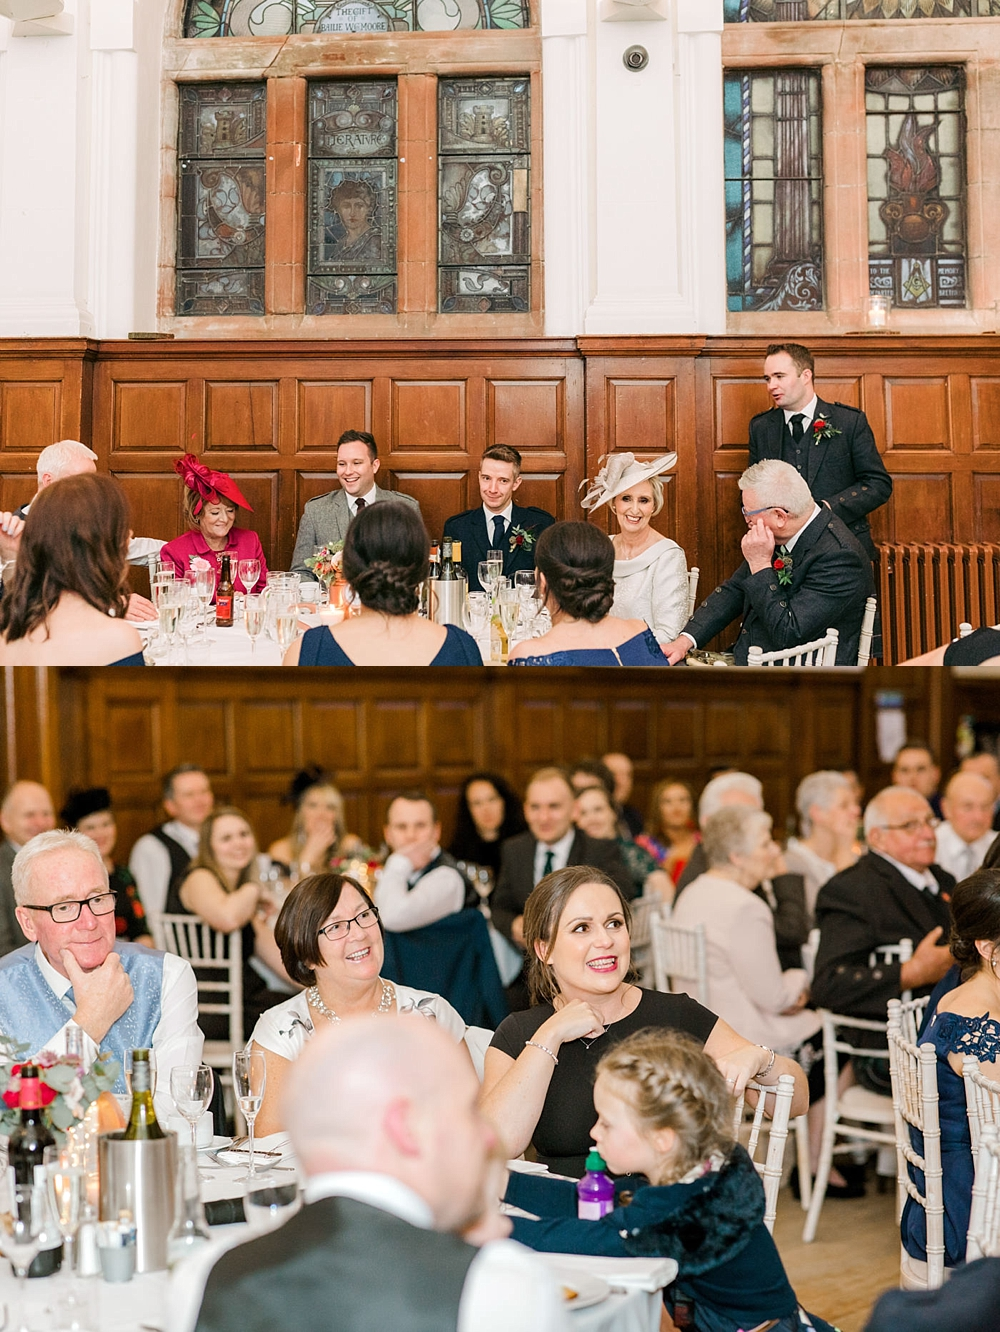 Pollokshields Burgh Hall Wedding 118.jpg